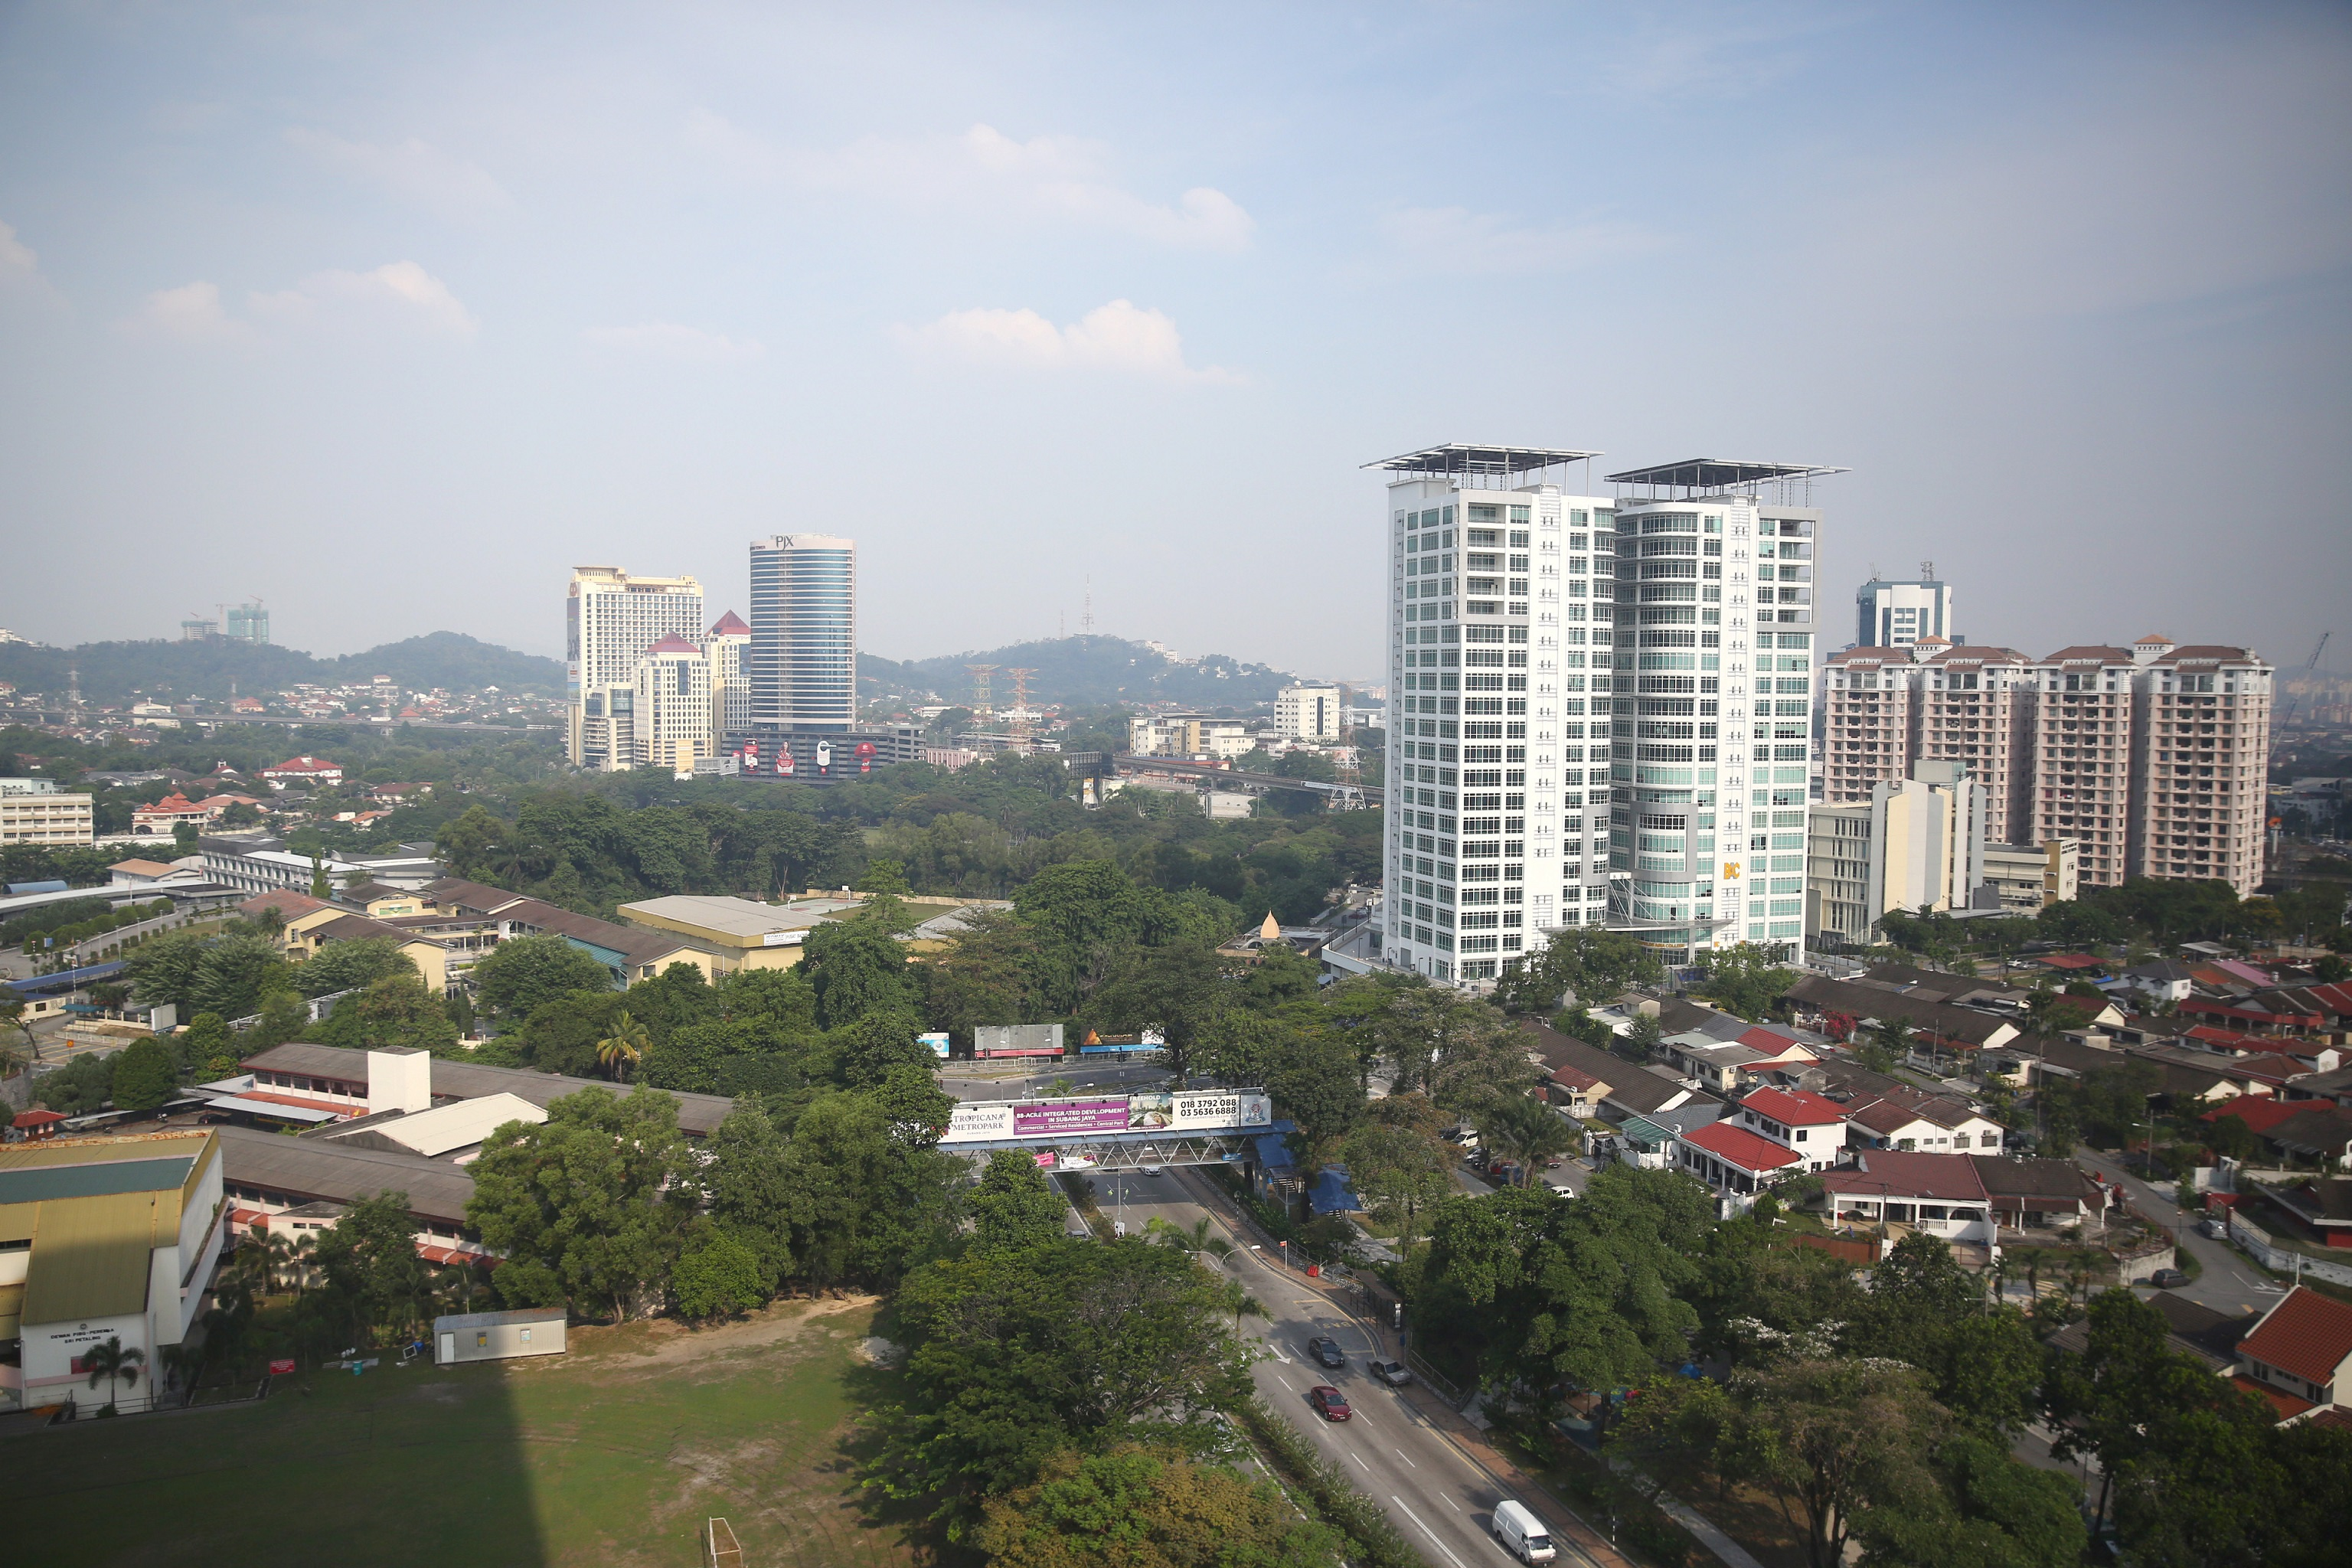 Property | Apartment & House For Sale Or Rent In Selangor - The Edge Property